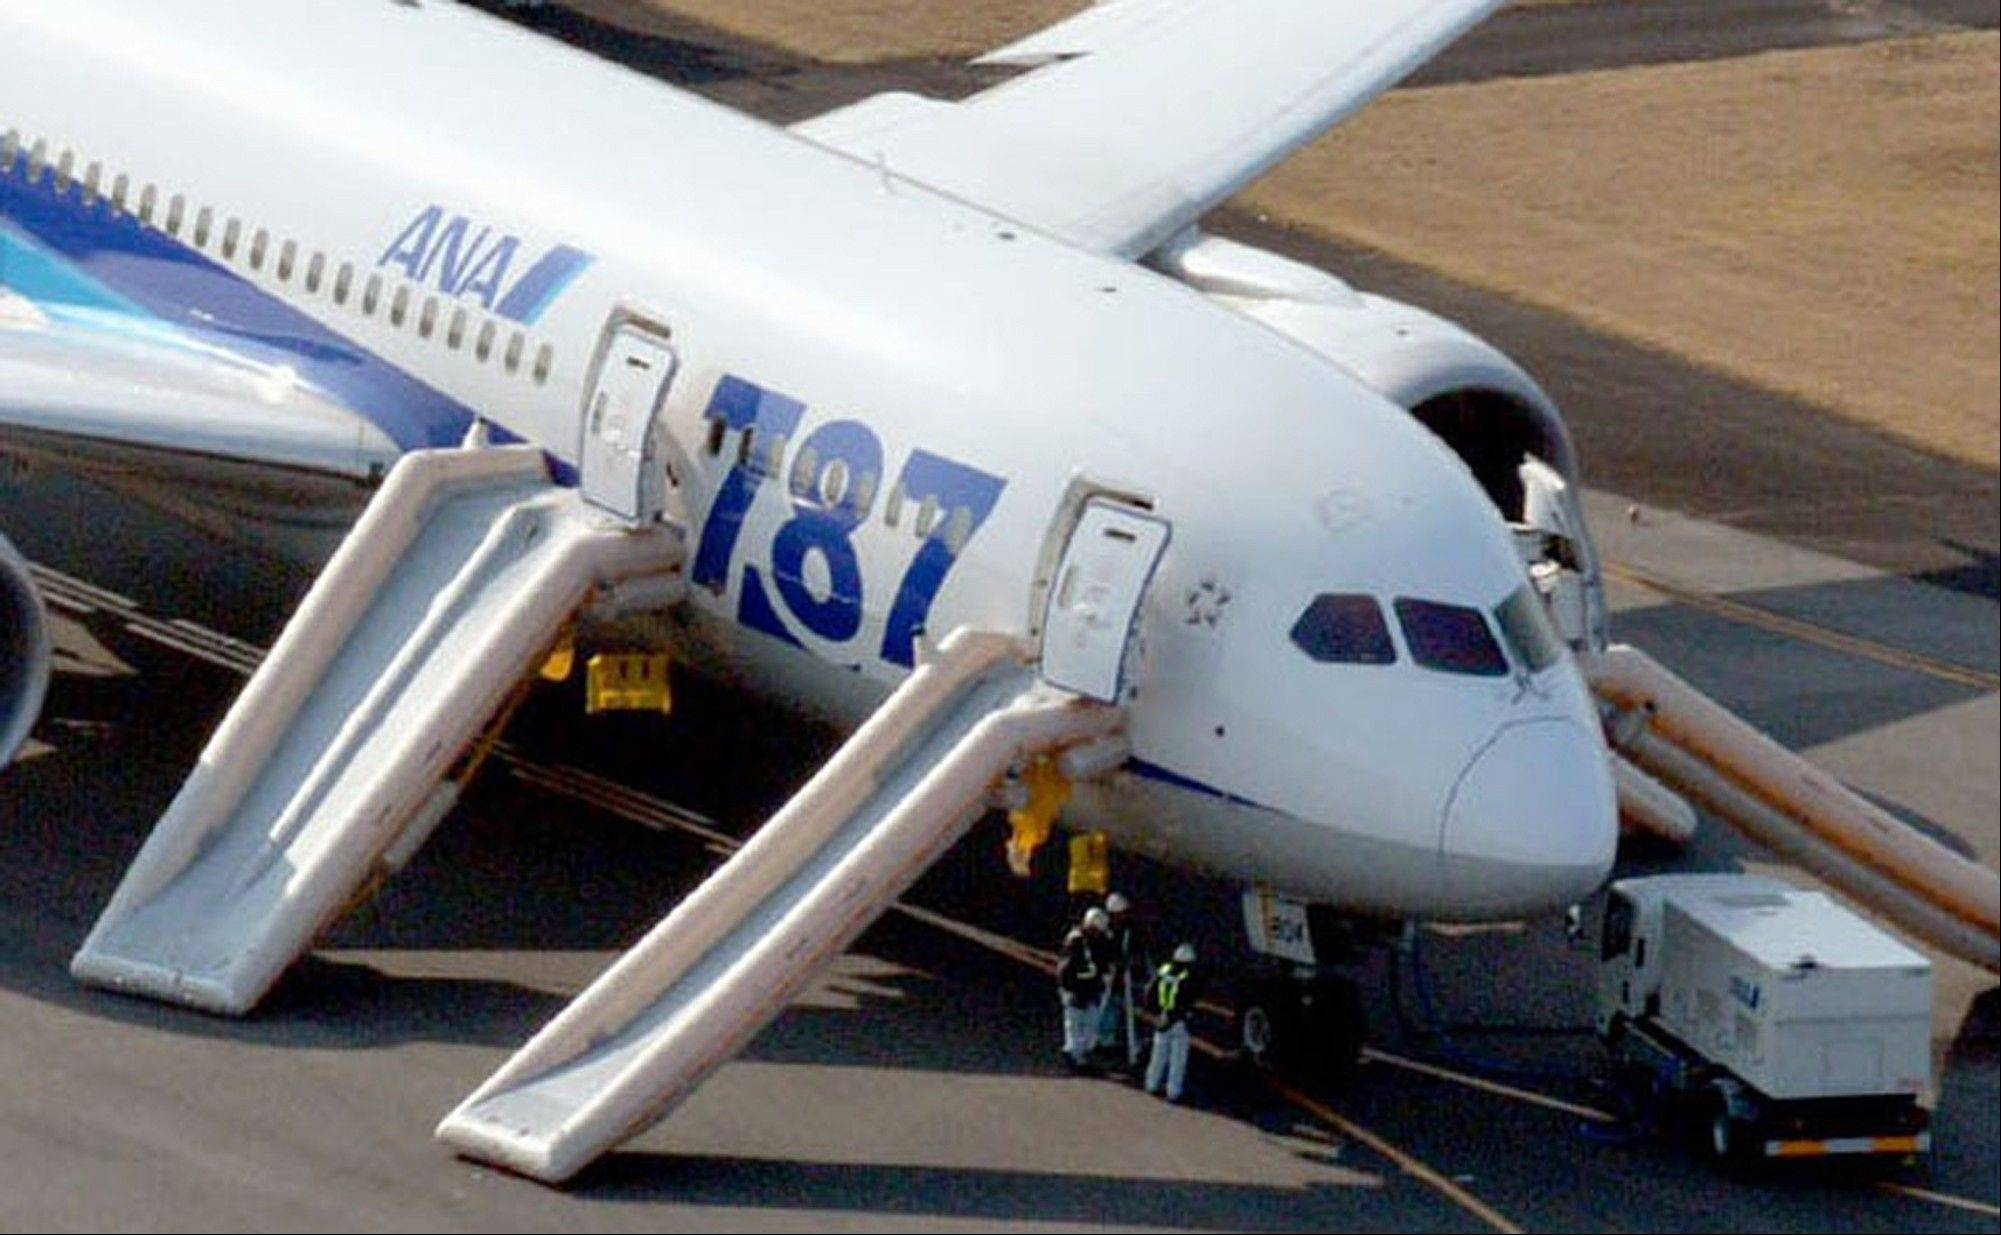 An All Nippon Airways flight sits at Takamatsu airport in Takamatsu, western Japan,